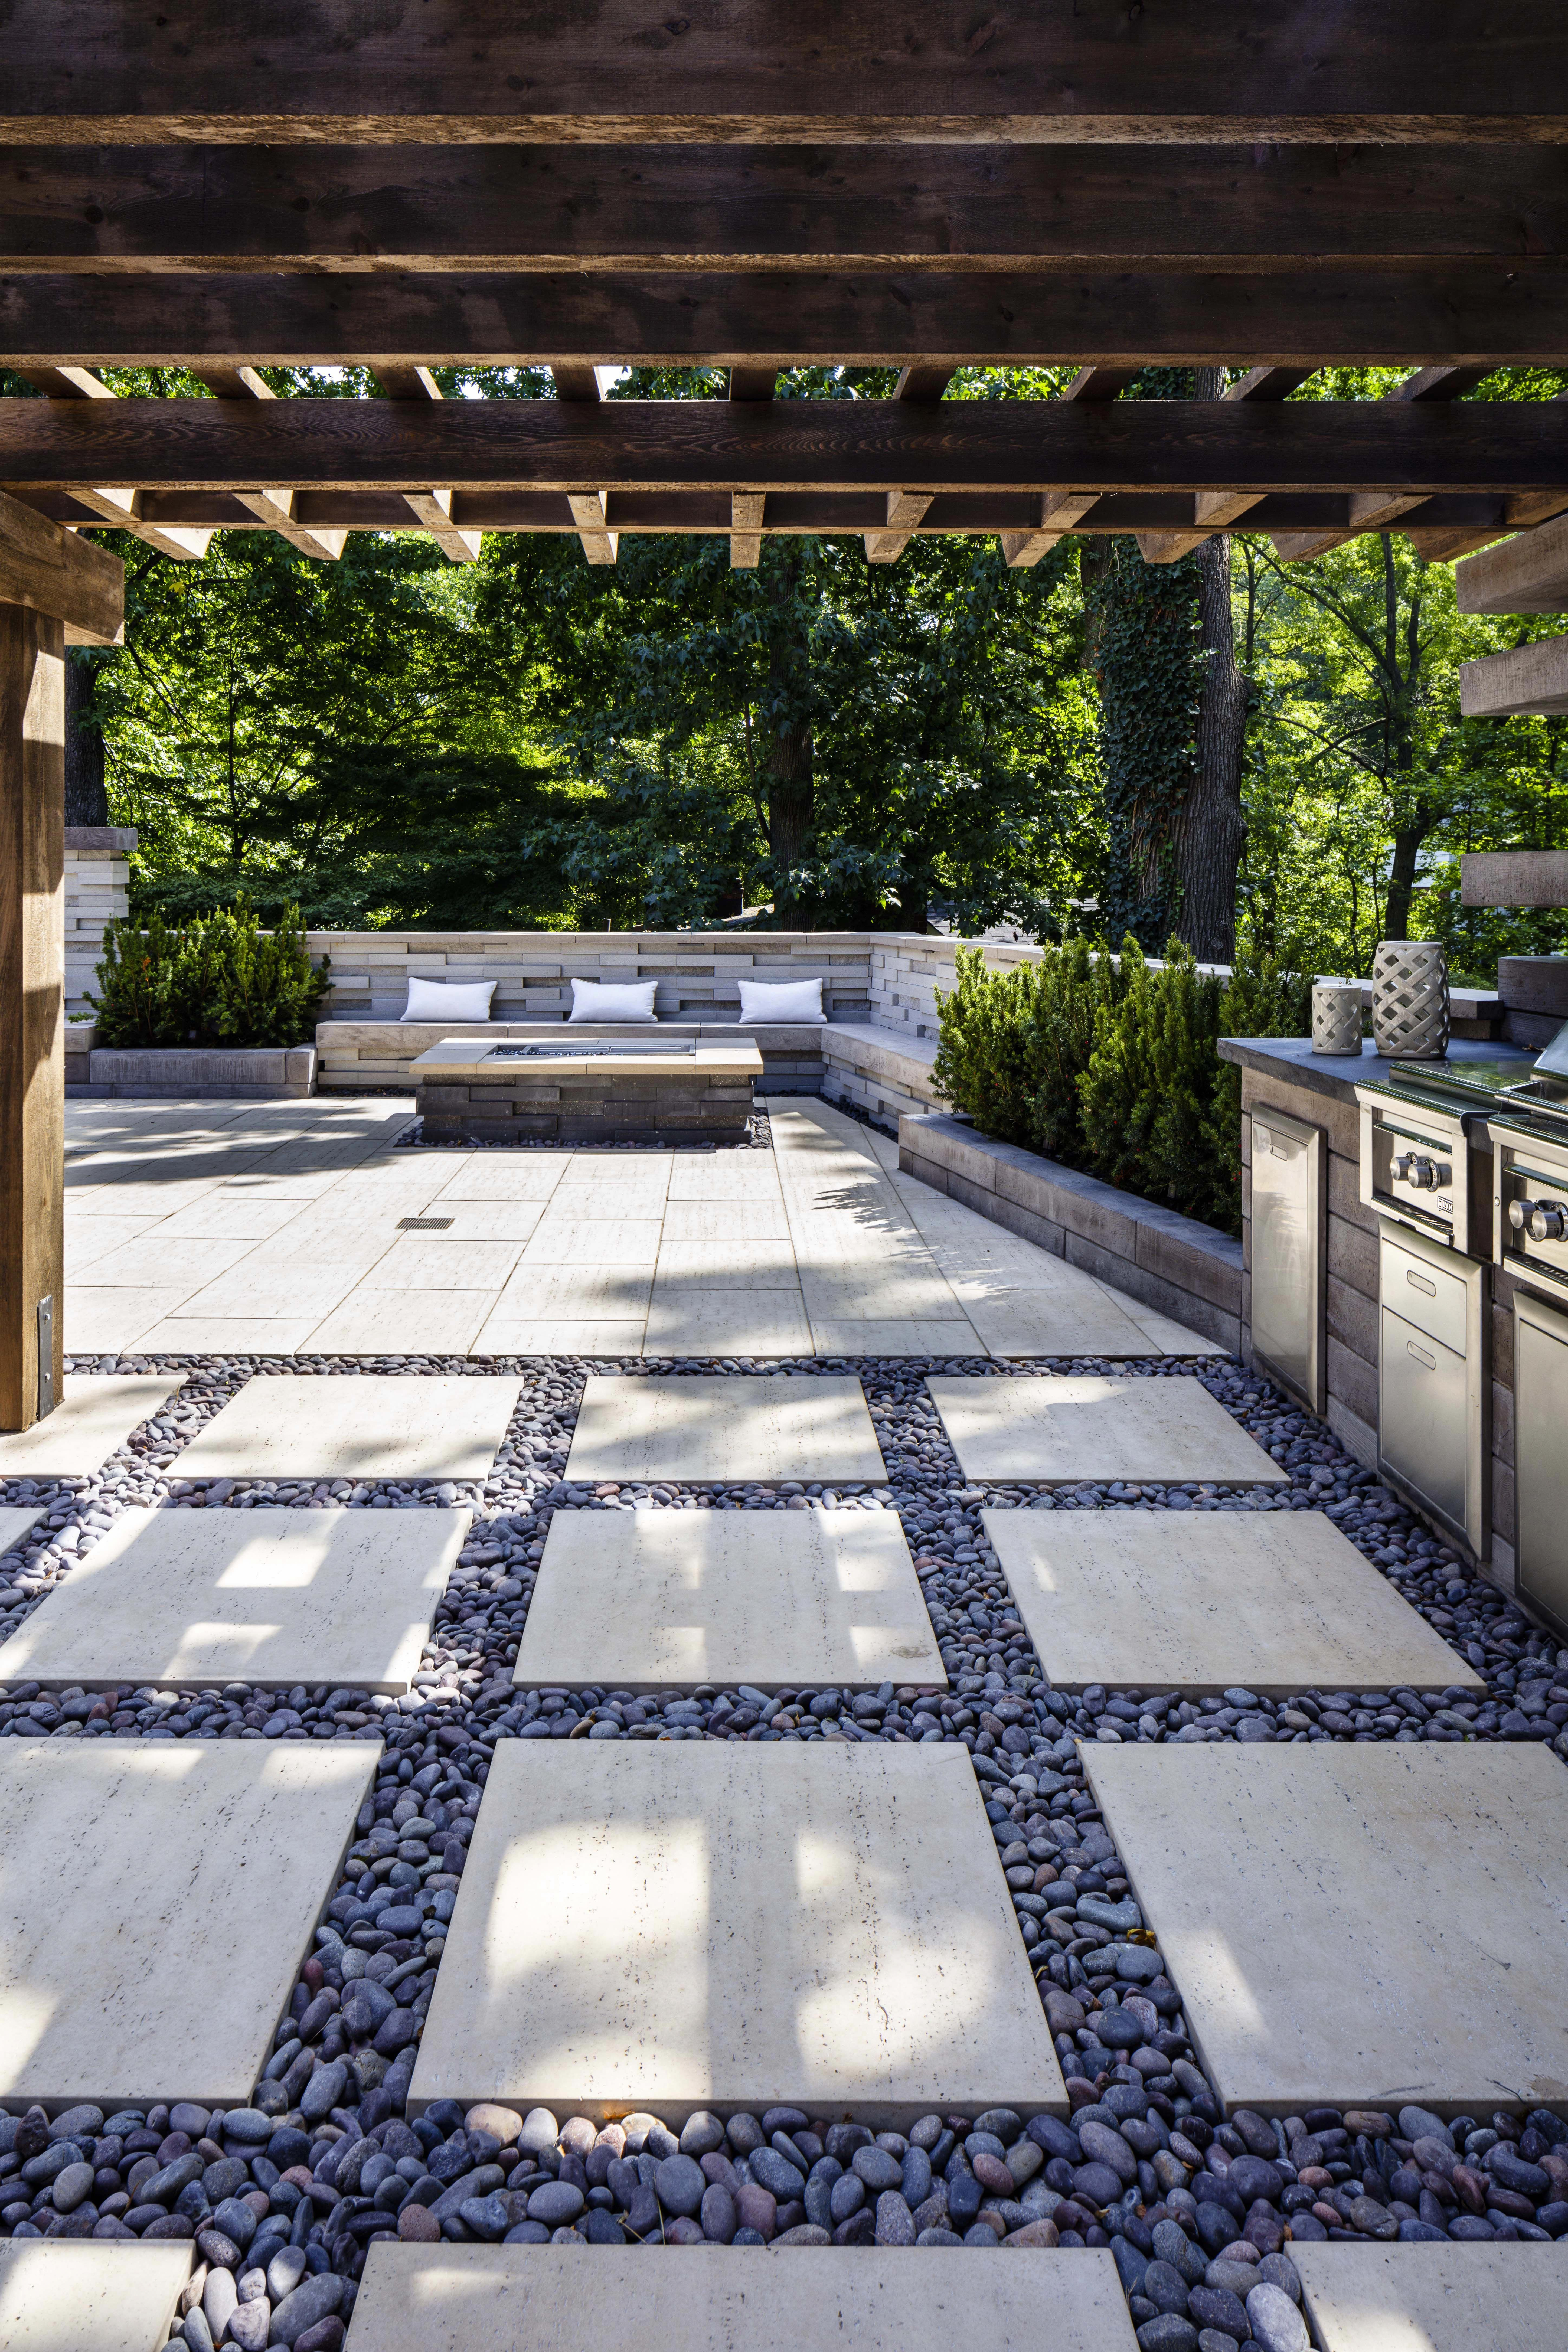 Hereus a great entertainment outdoor space with a full outdoor